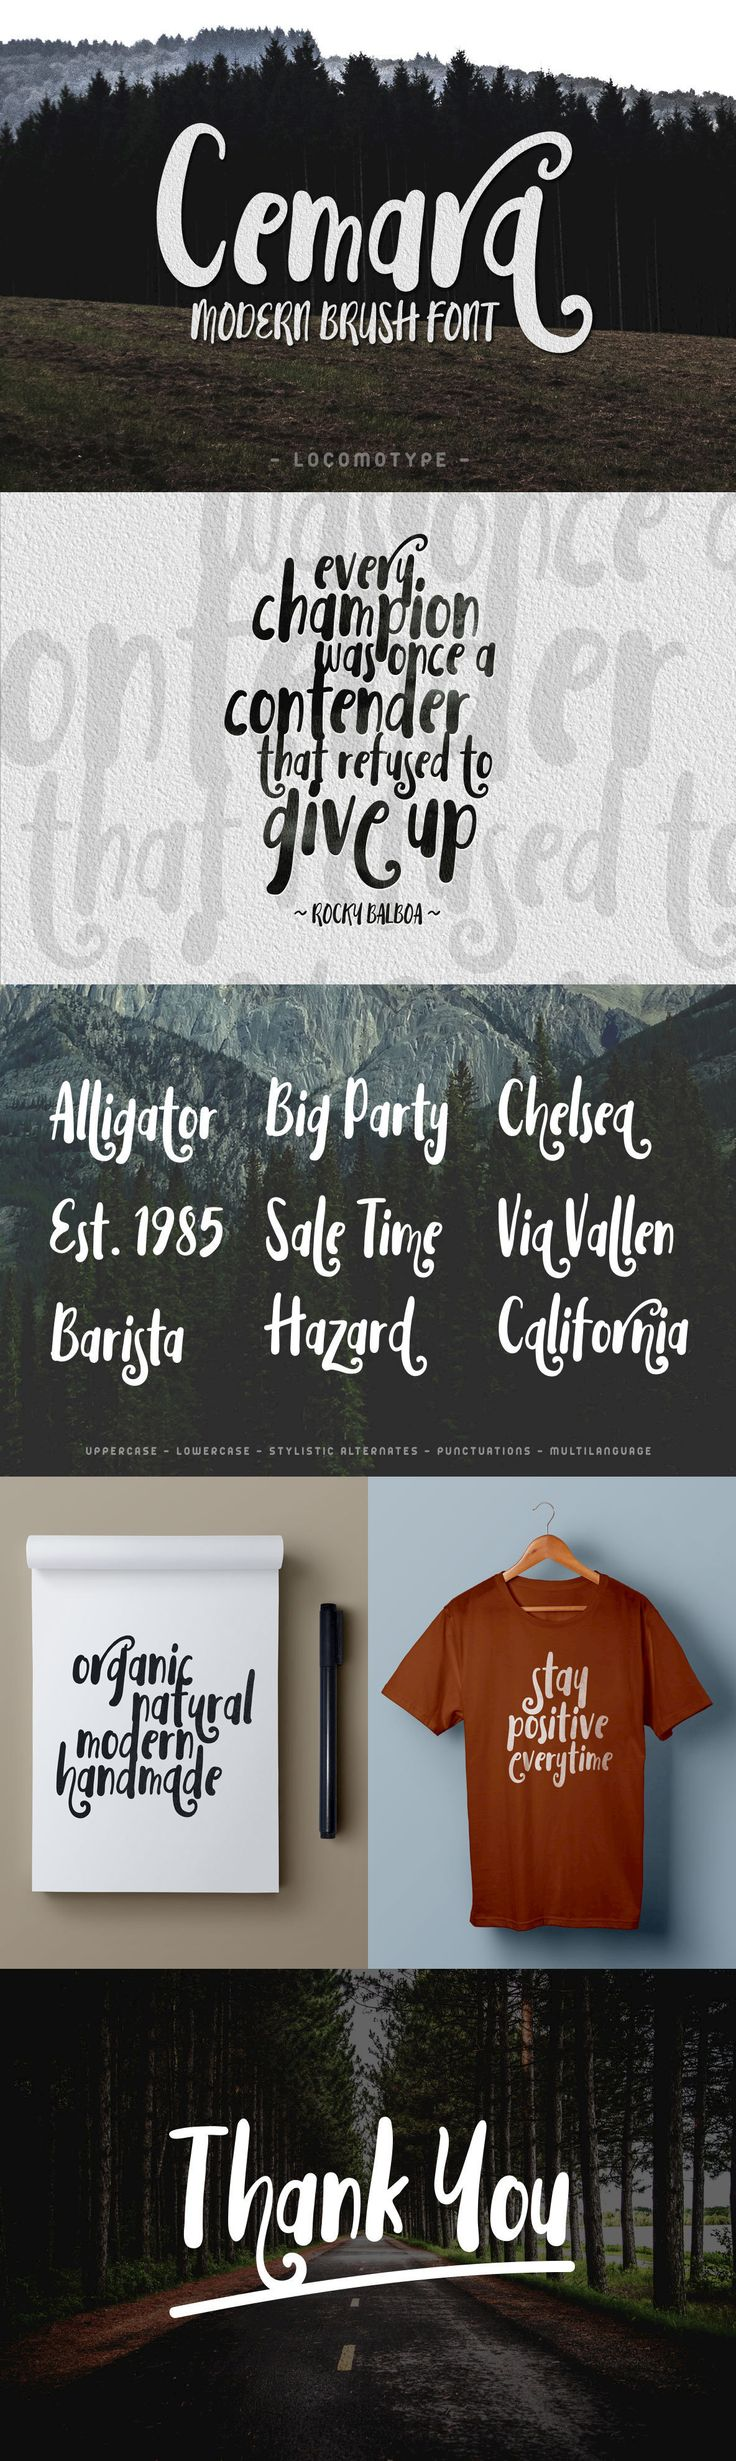 Cemara - Cemara is a hand-painted typeface inspired by modern calligraphy.  This is a kind of an organic fo...